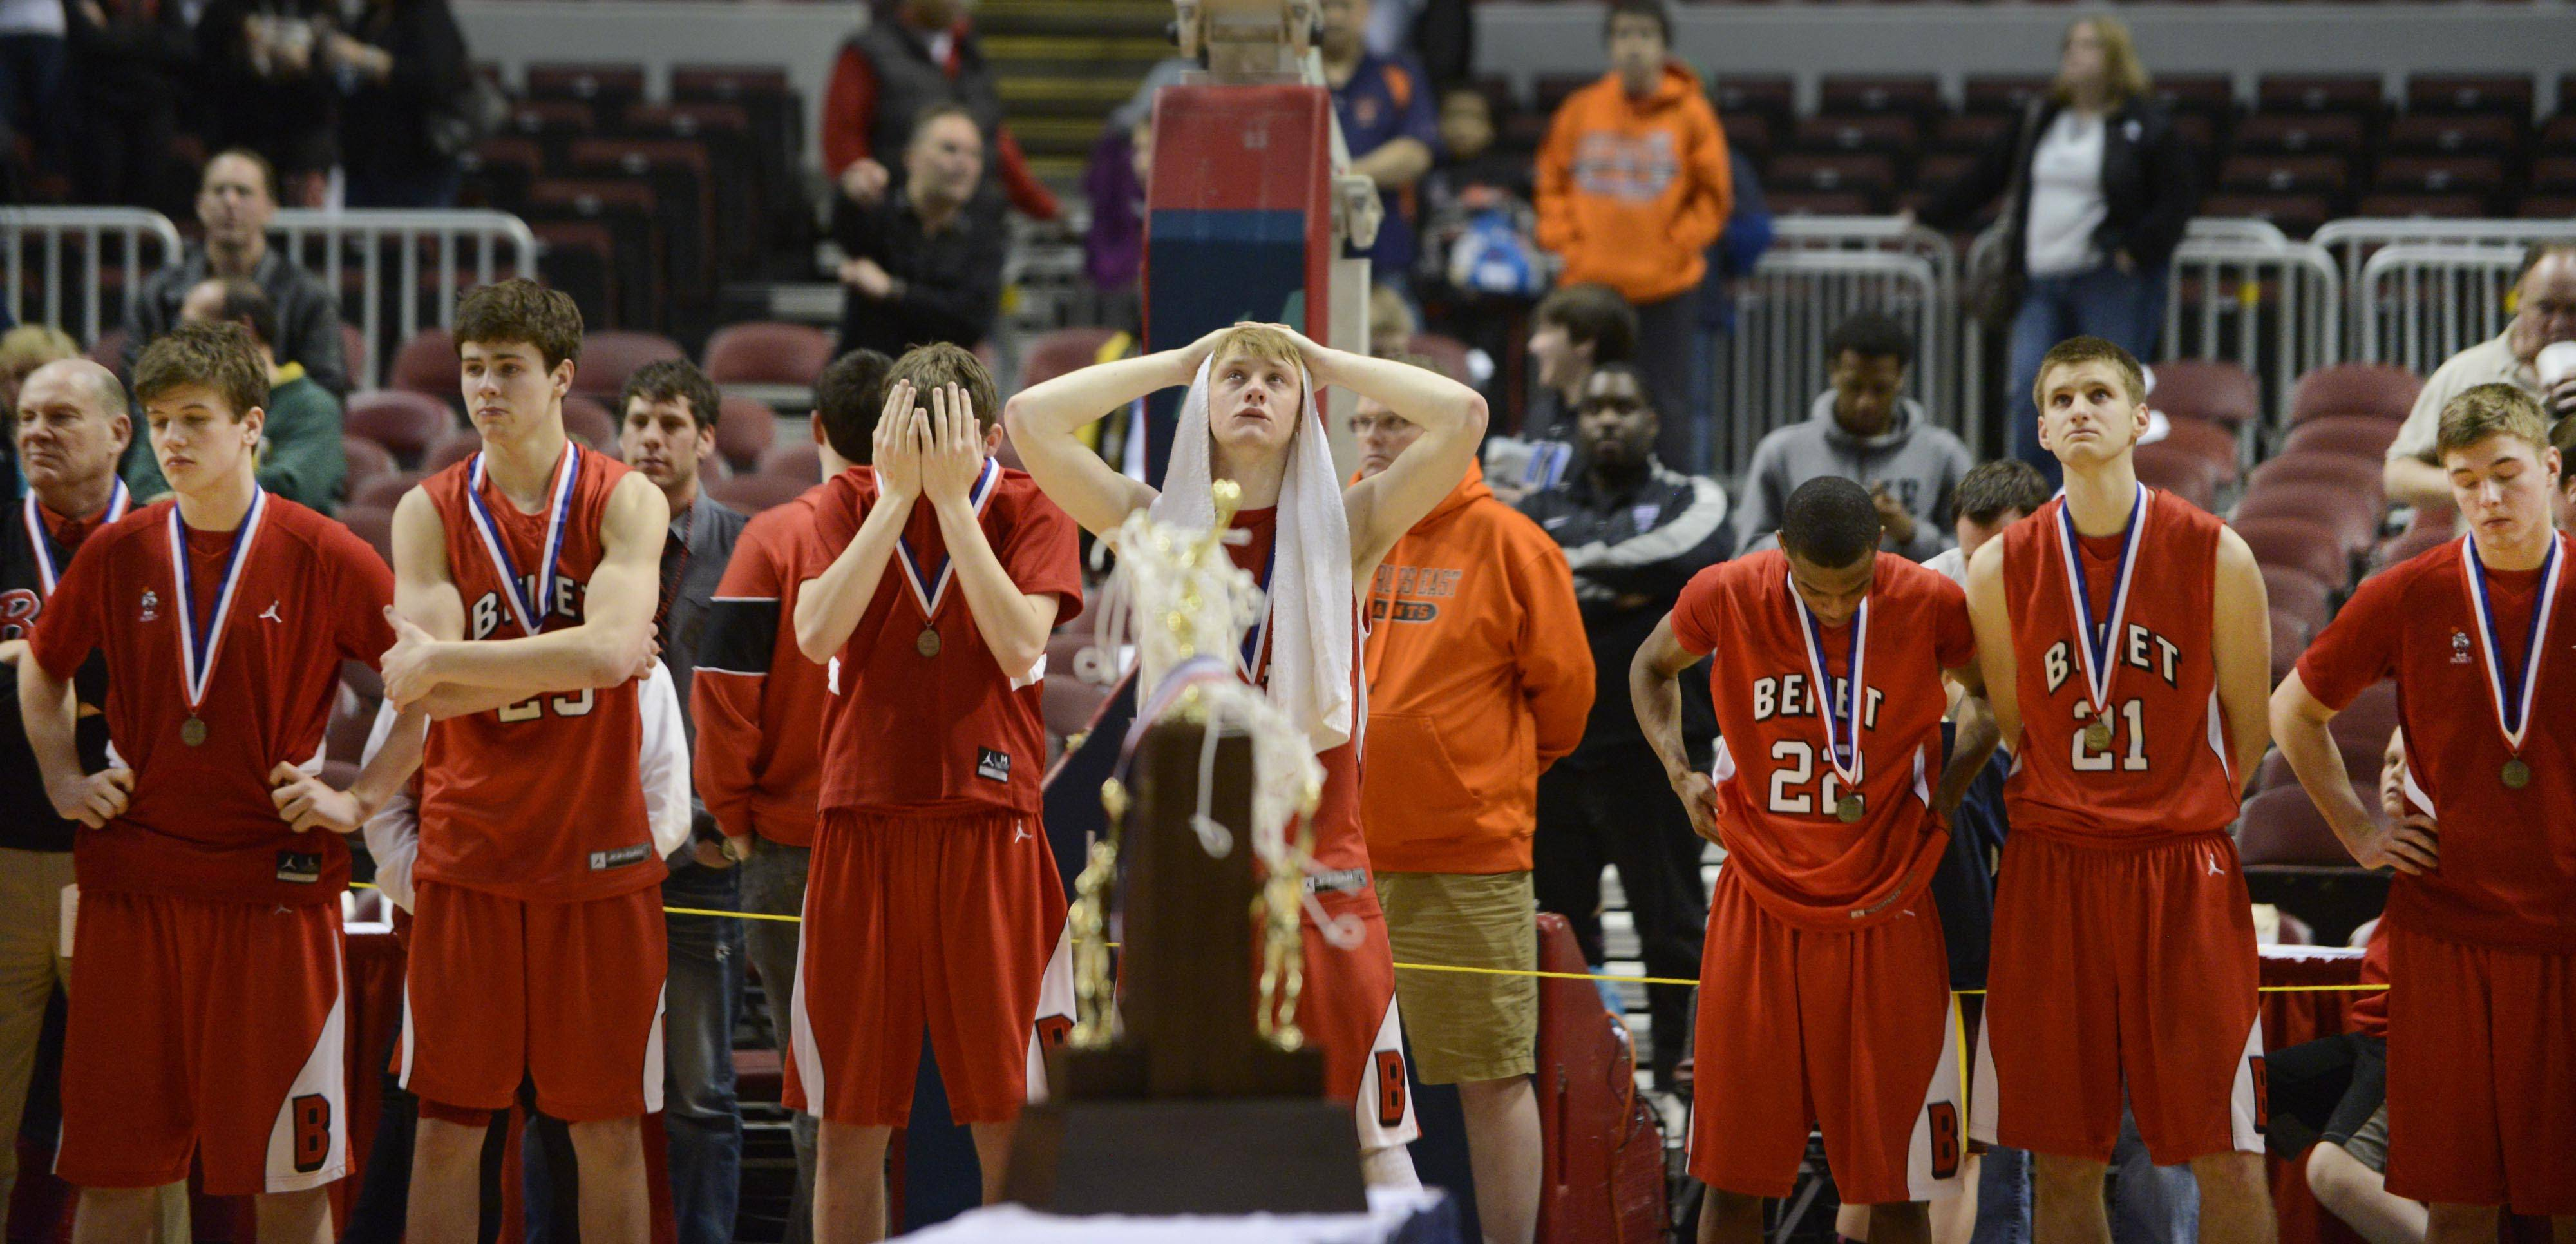 Benet Academy's Liam Nelligan holds a towel on his head as he waits with his teammates for their second place trophy after losing to Whitney Young in the Class 4A state championship game at Carver Arena in Peoria Saturday.